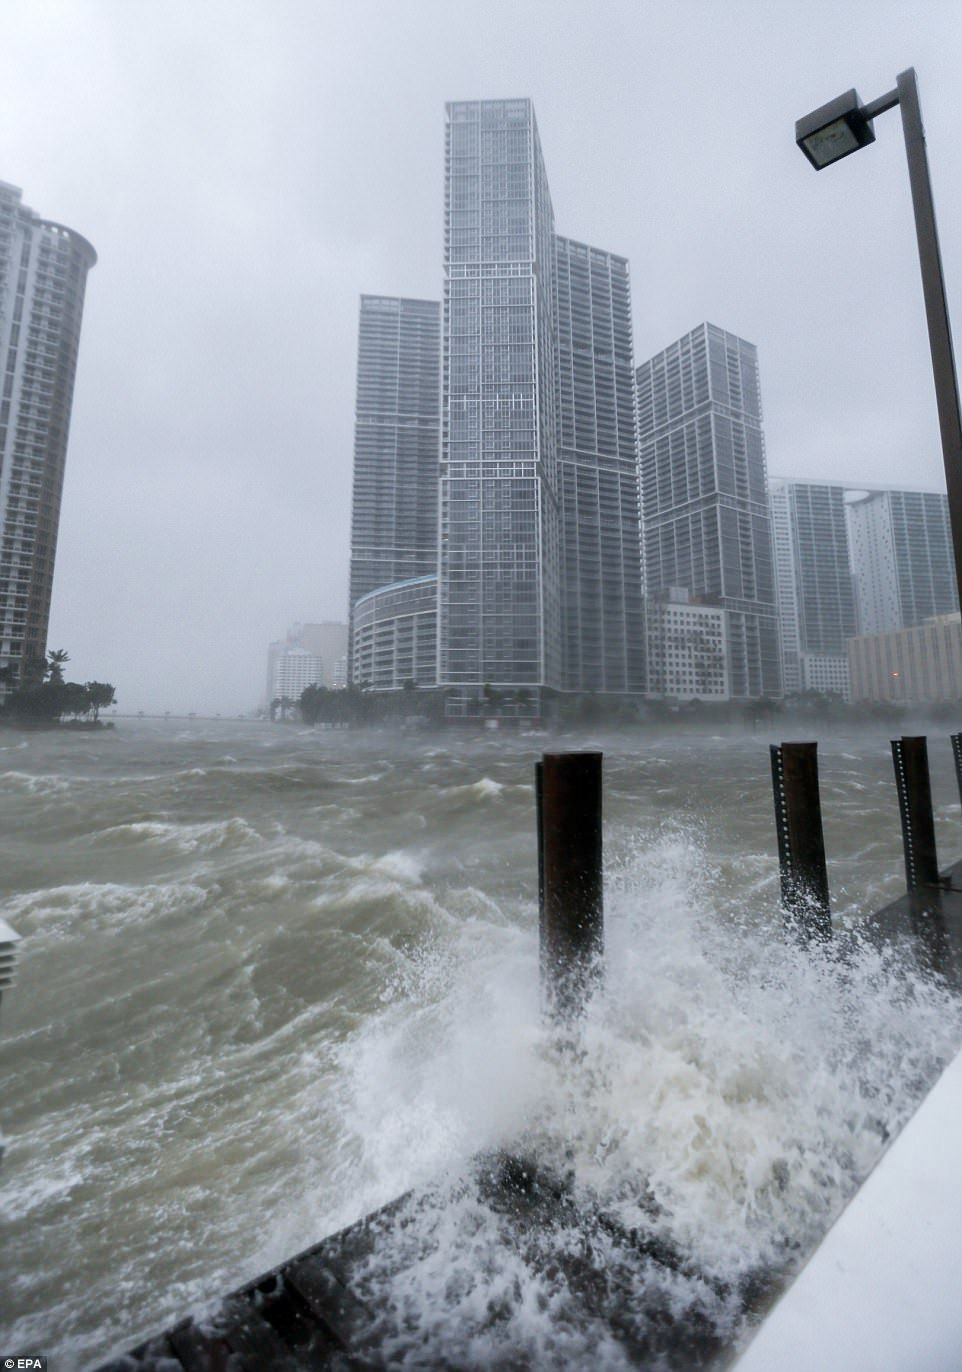 10 000 People In Florida Have No Water Or Food After Irmageddon National Hurricane Center Florida Downtown Miami